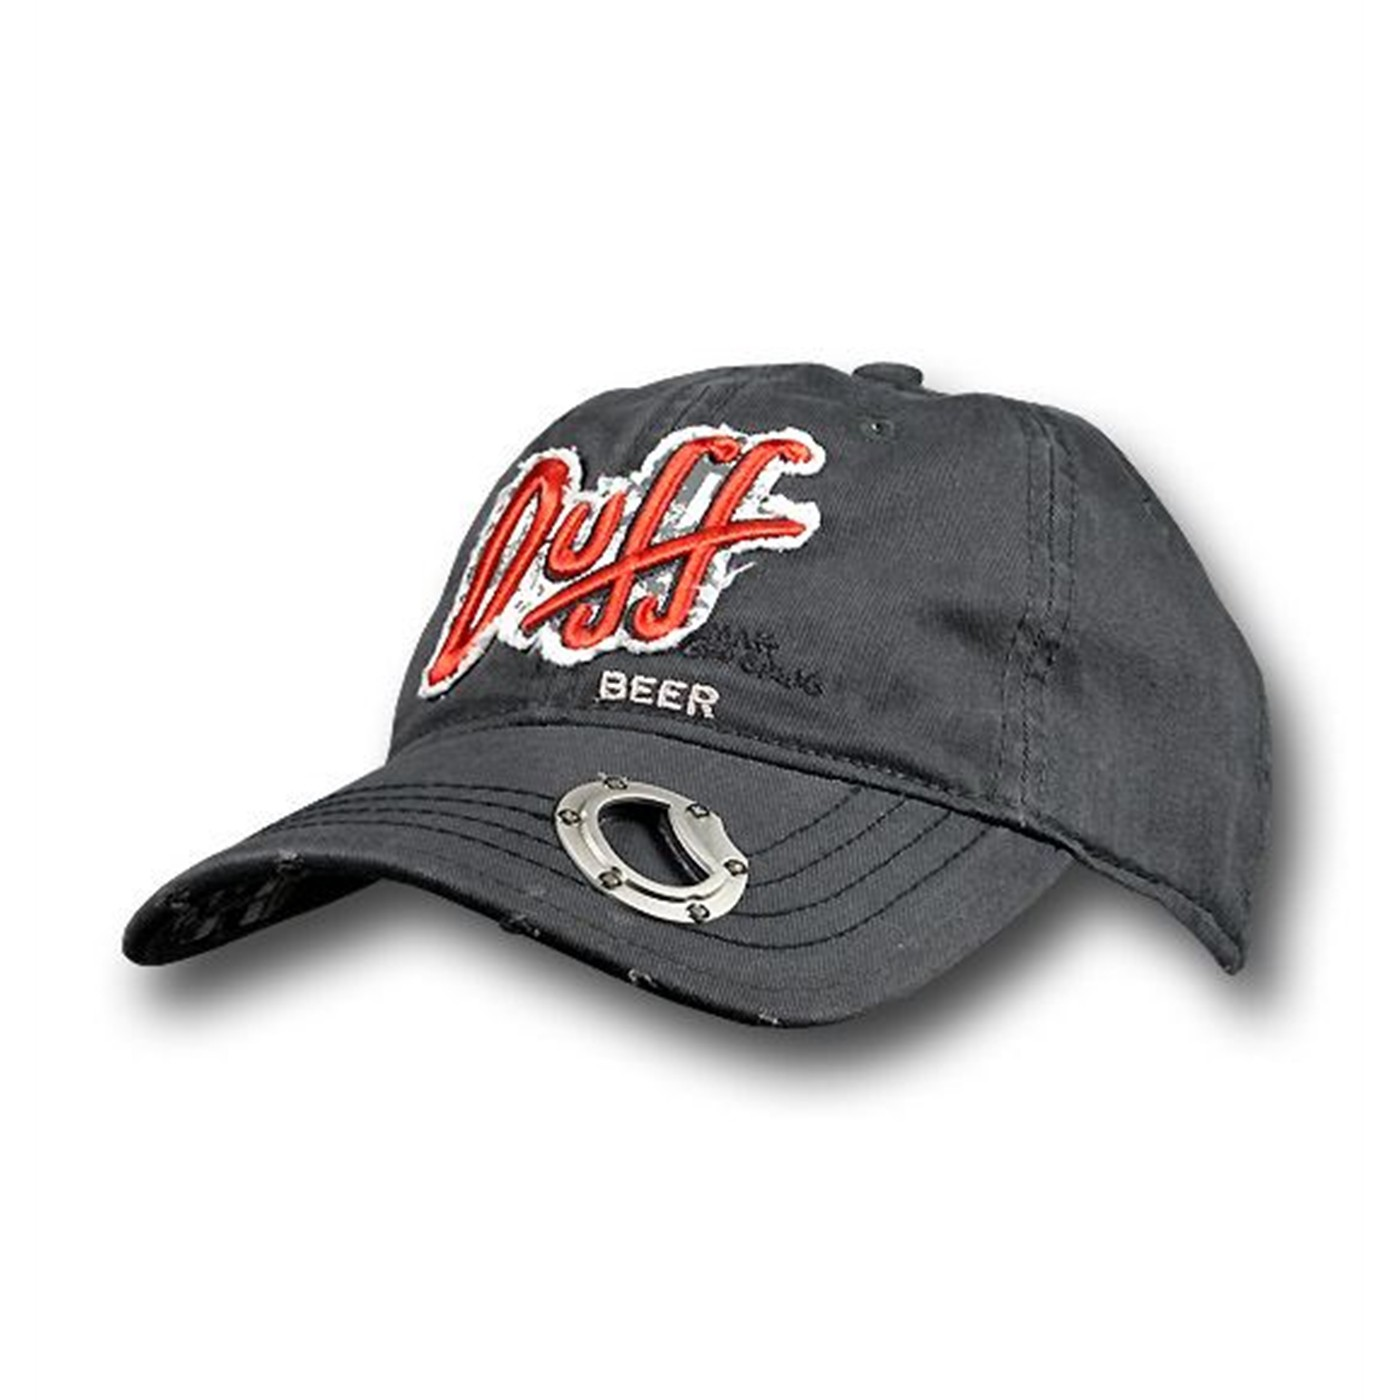 Simpsons Duff Beer Logo Cap With Opener